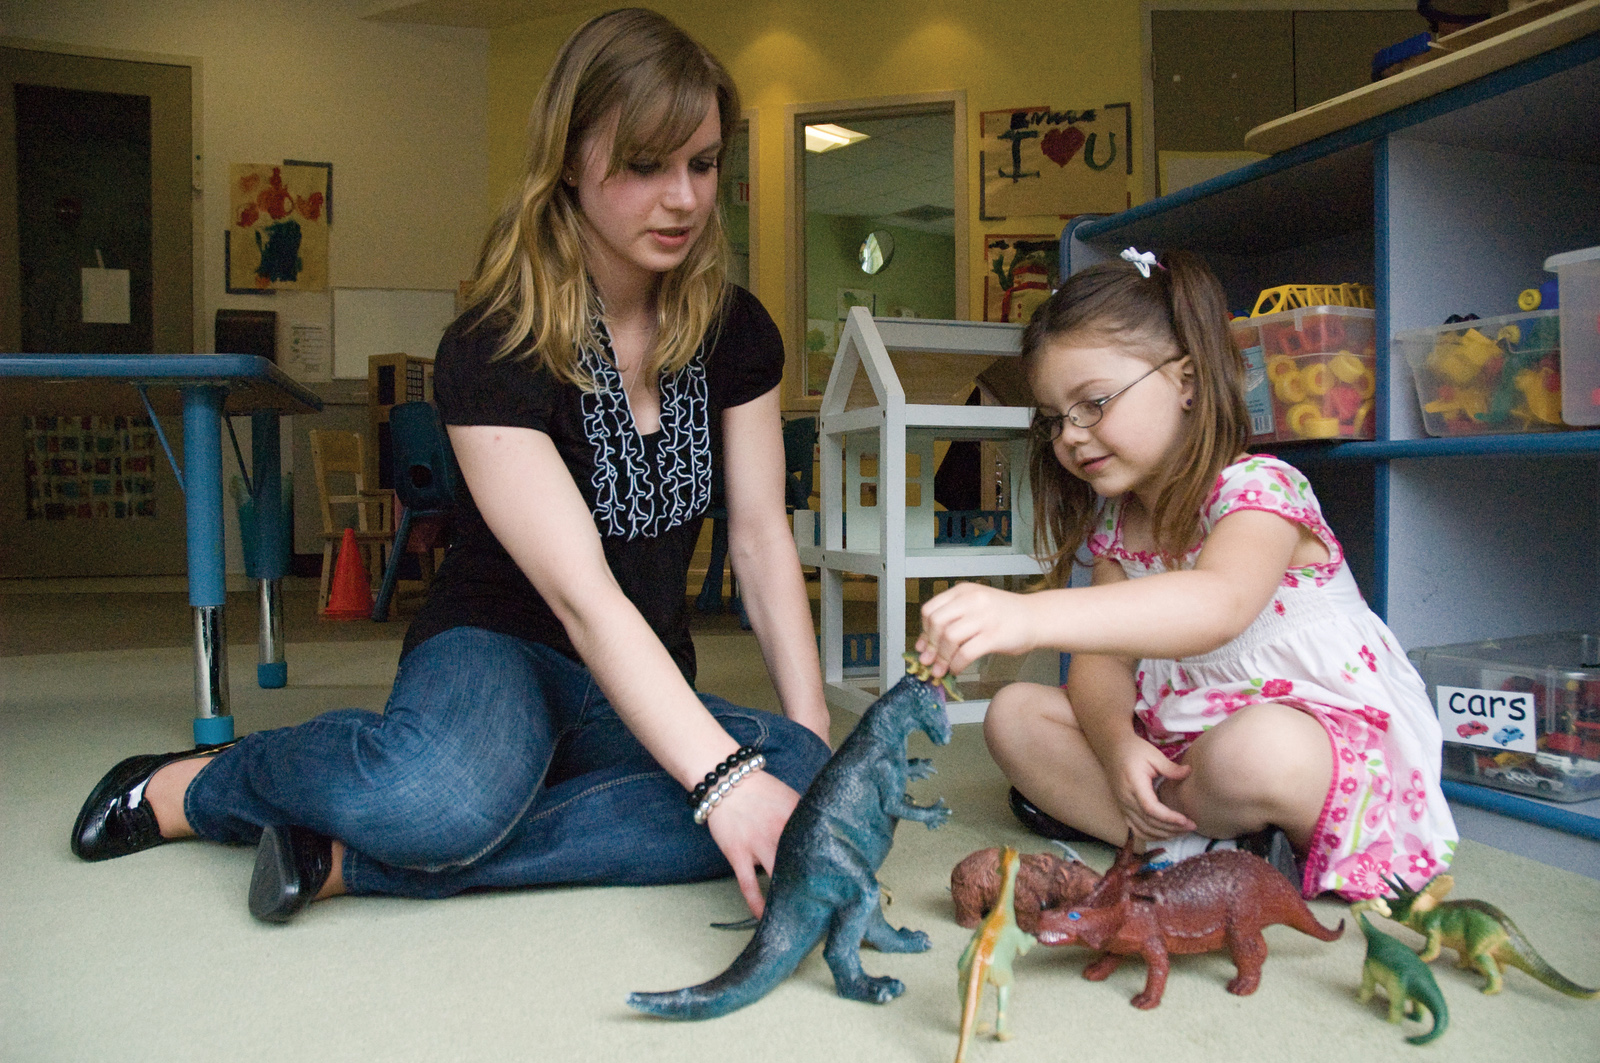 A woman interacts with a child who is playing with toy dinosaurs.